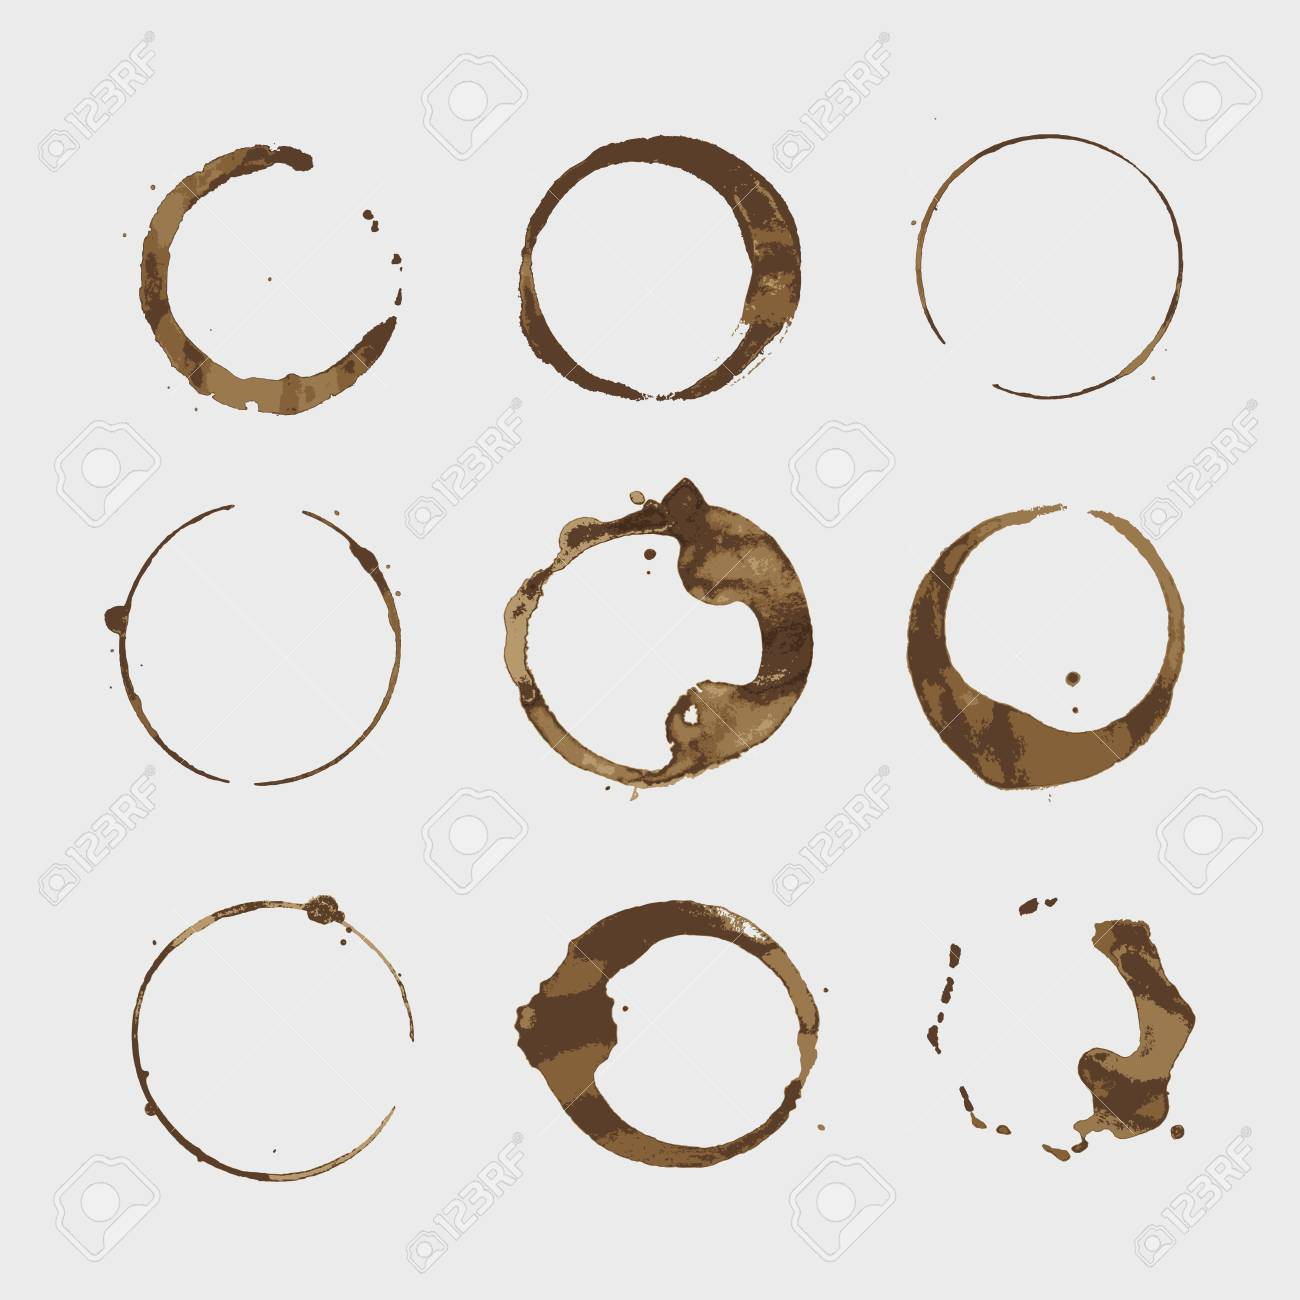 Vector coffee stains cup rings set. Isolated On White Background for Grunge Design - 120976074